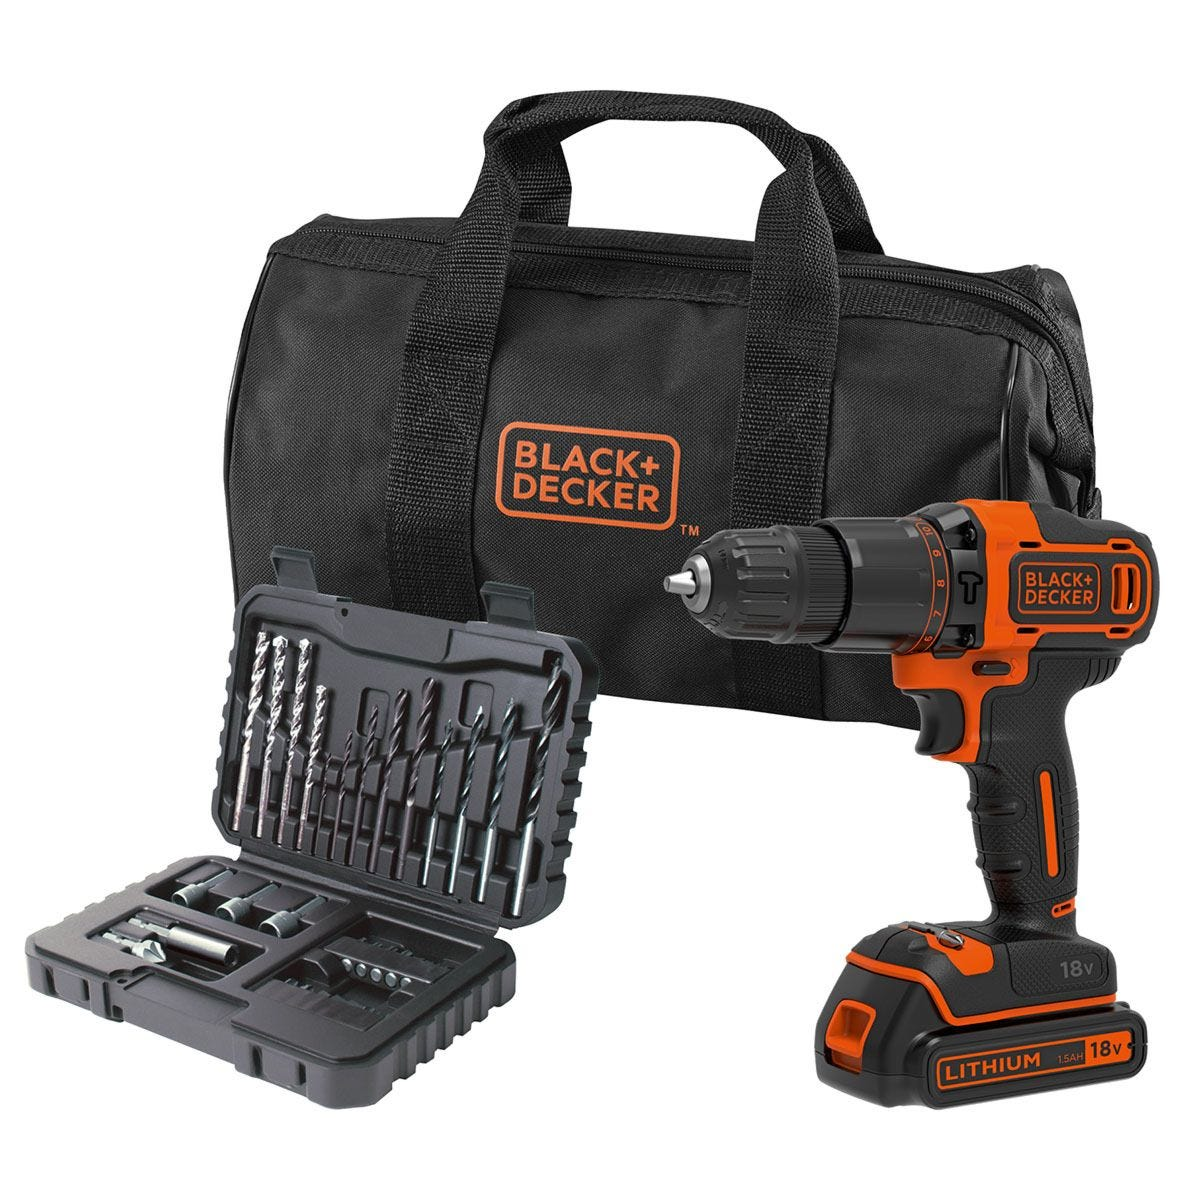 Black + Decker 18V Combi Drill with 1.5AH Lithium Battery & 32-Piece Accessory Set